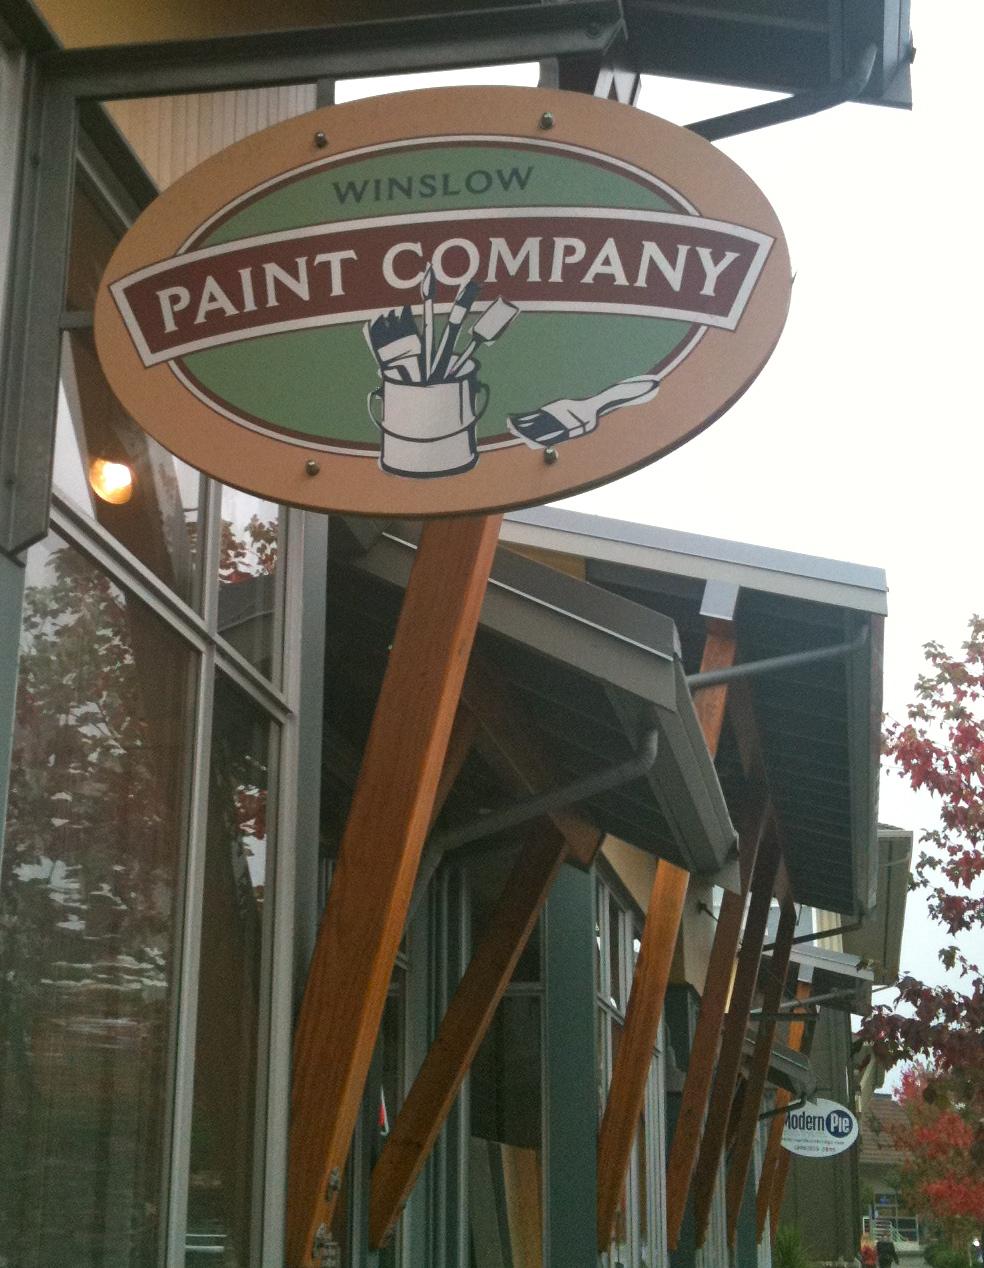 Winslow Paint Company on Bainbridge Island